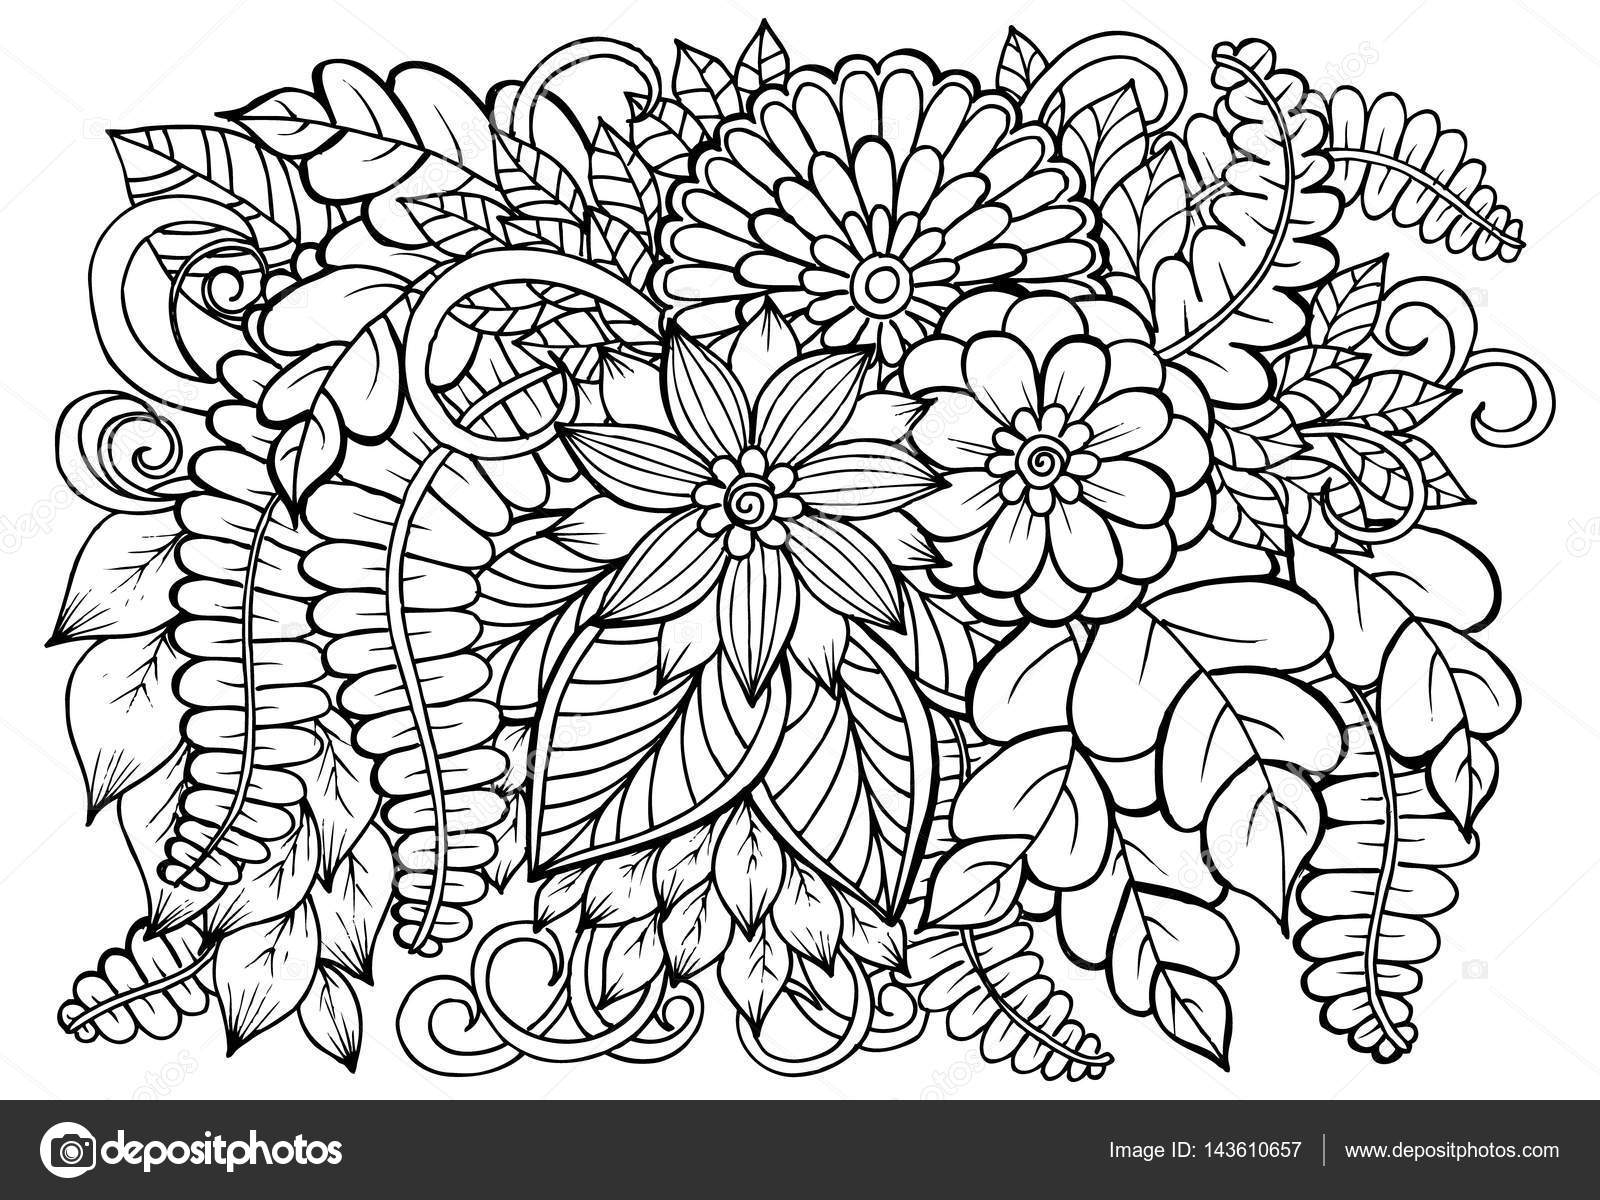 1600x1200 Vector Black And White Flower Pattern For Adult Coloring Book